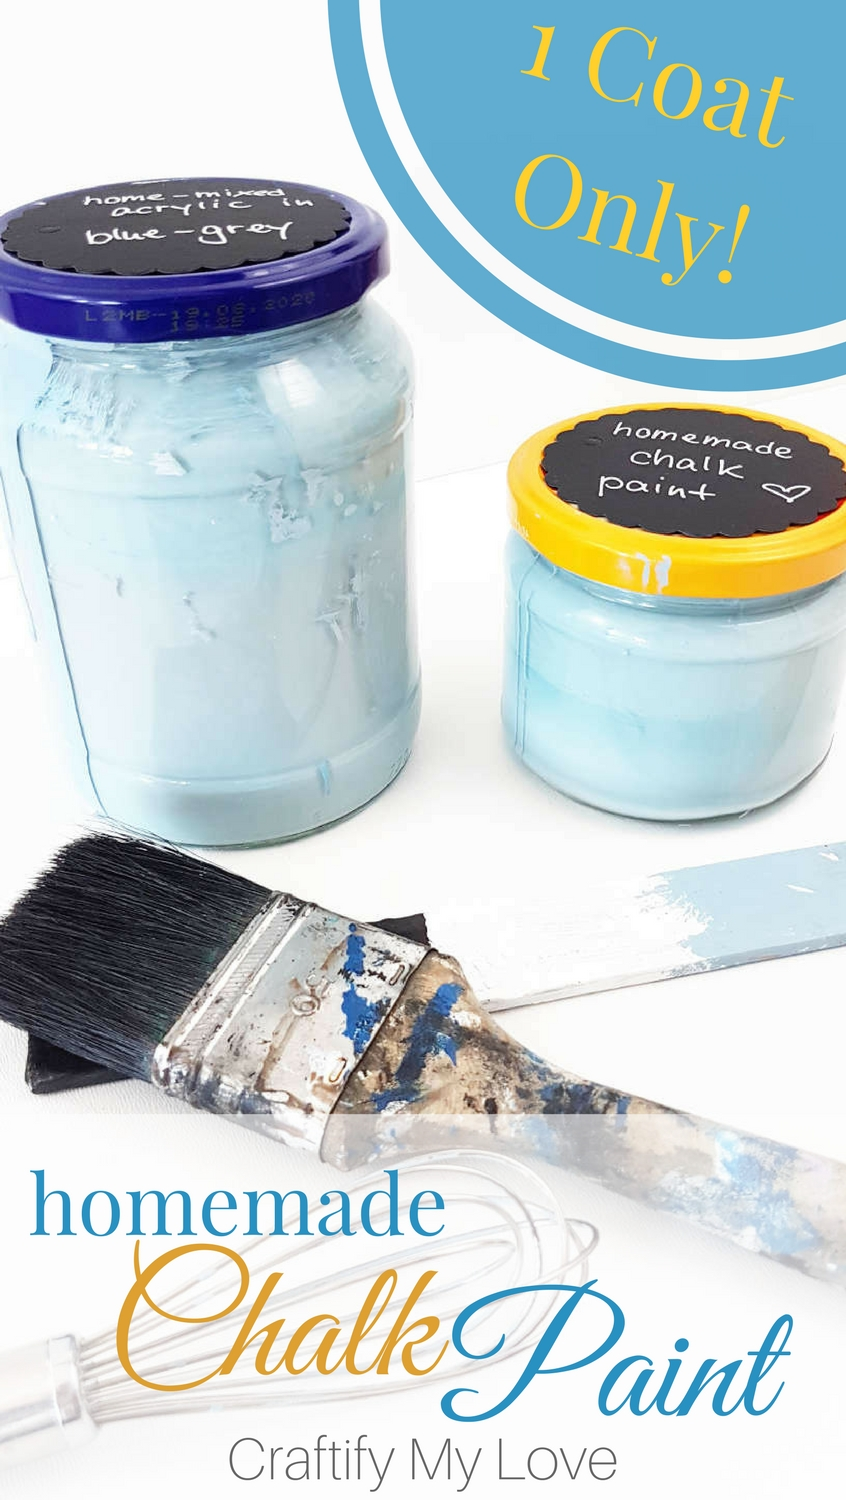 Learn how to make homemade Chalk Paint that has full coverage with one coat only! #chalkpaint #diychalkpaint #homemadechalkpaint #paint #diyfurniture